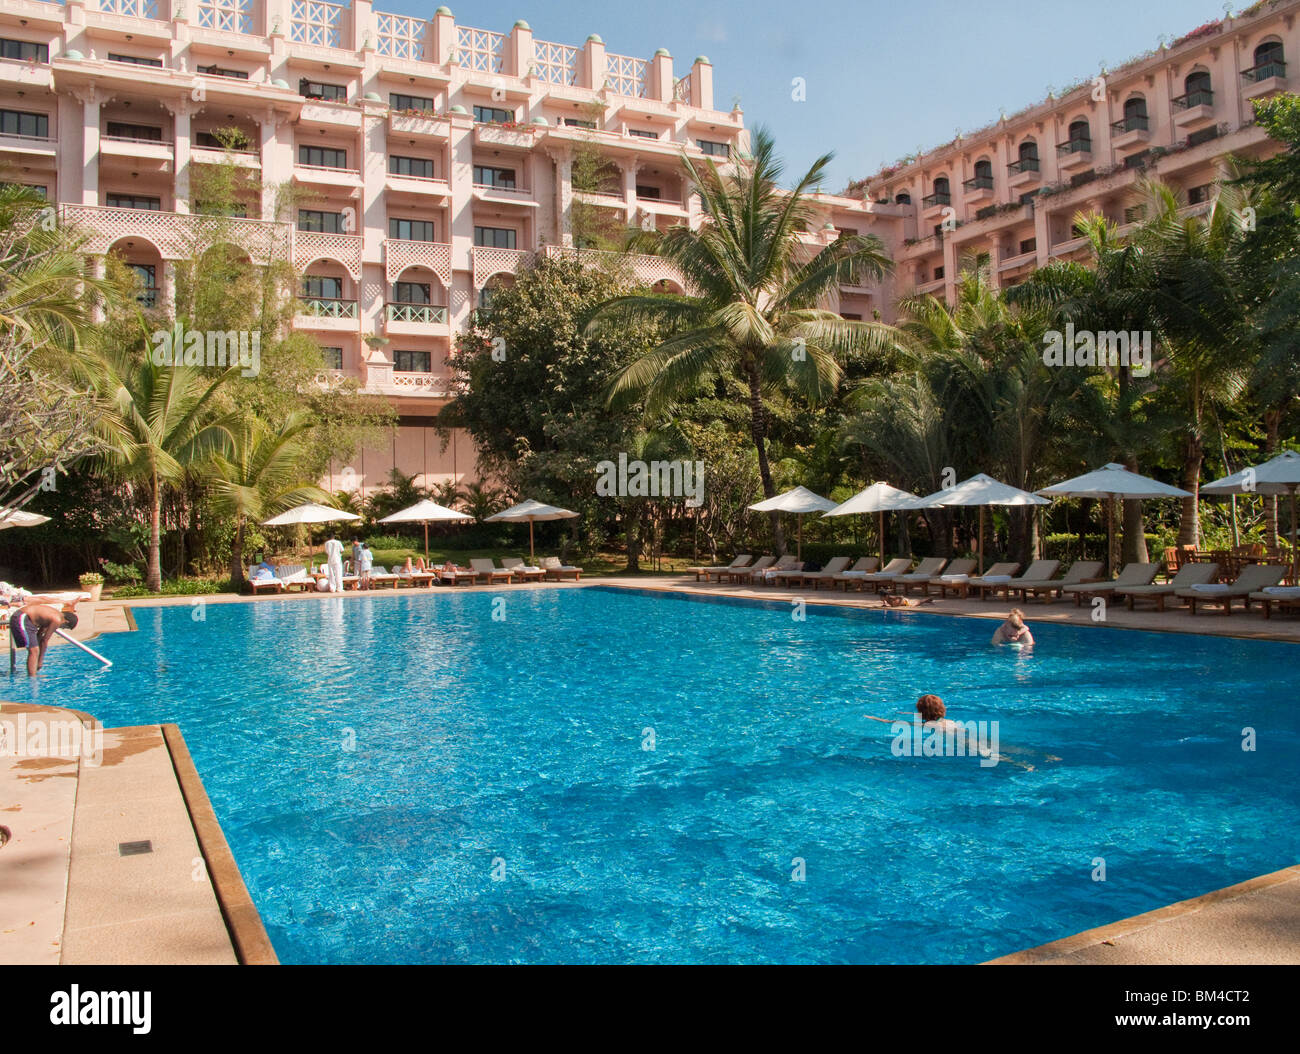 The Swimming Pool At The Leela Palace Hotel In Bangalore Stock Photo 29601378 Alamy